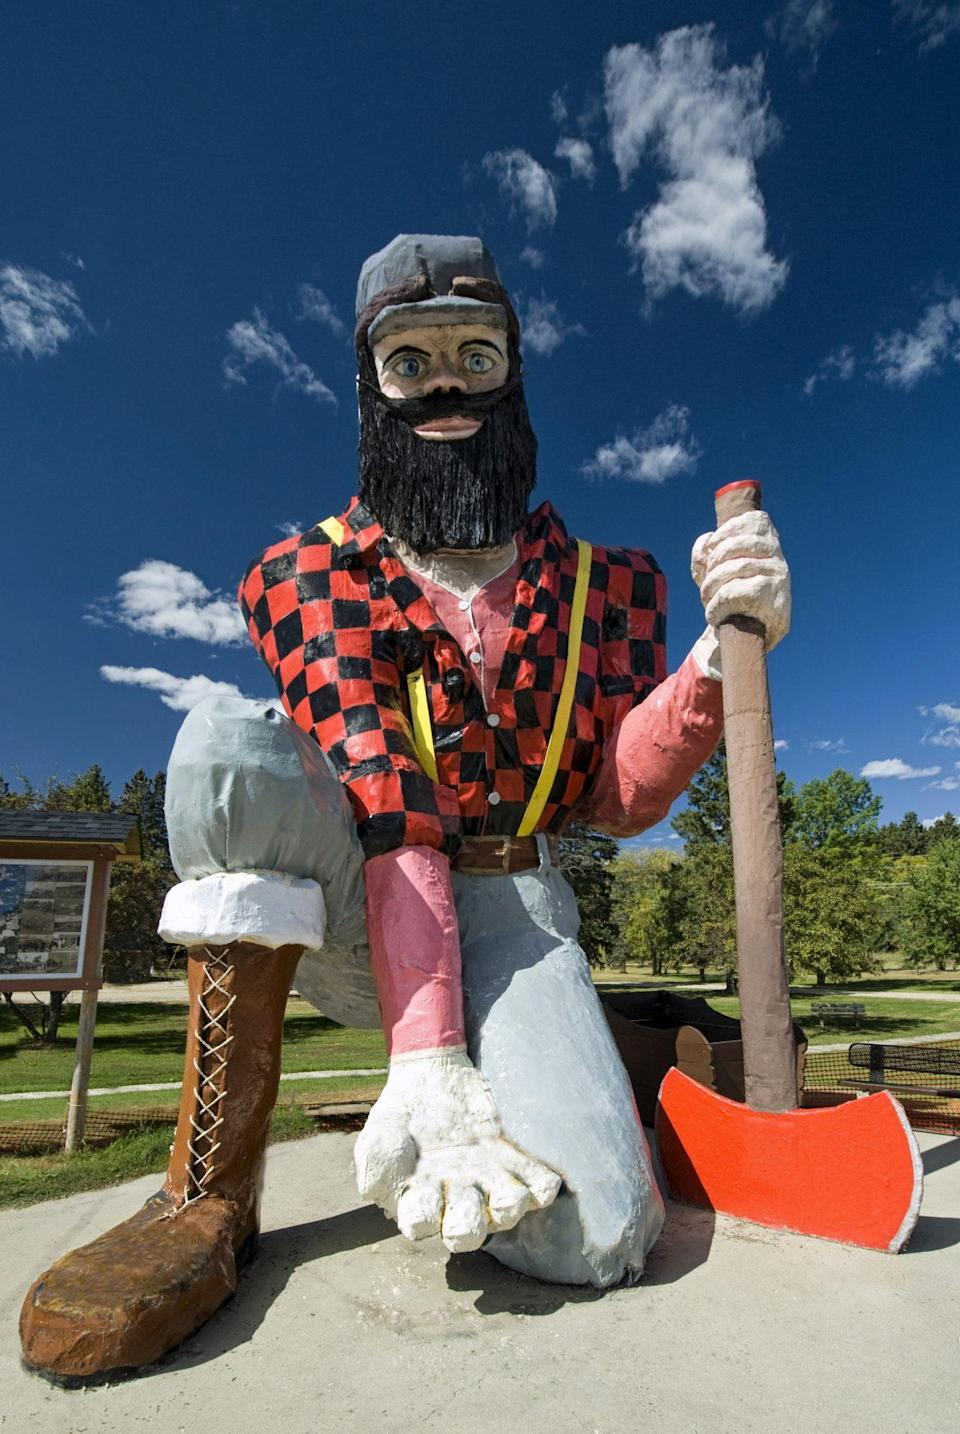 """<p>The welcoming <a href=""""https://www.roadsideamerica.com/story/2419"""" rel=""""nofollow noopener"""" target=""""_blank"""" data-ylk=""""slk:Paul Bunyan Statue"""" class=""""link rapid-noclick-resp"""">Paul Bunyan Statue</a> in Akeley, Minnesota, invites visitors to crawl into the palm of Paul's hand for a Instagram-ready photo.</p>"""